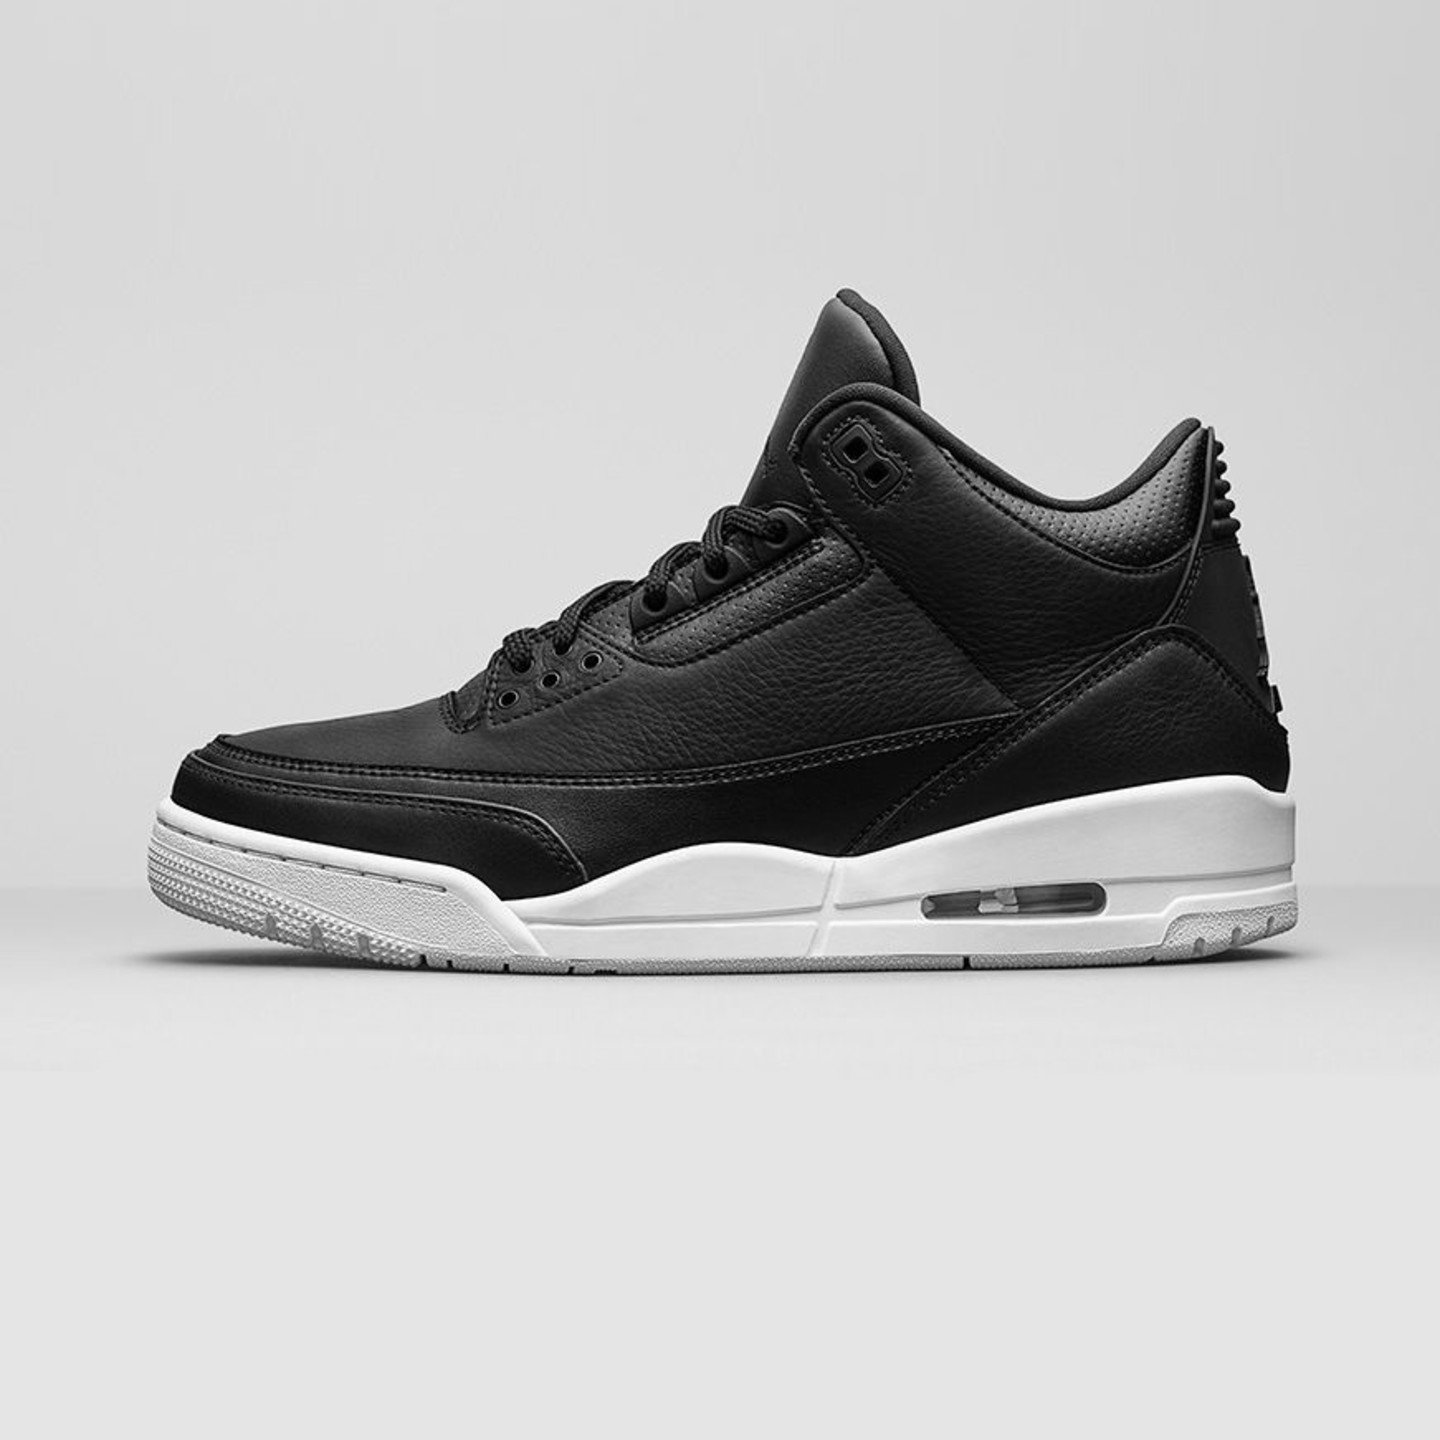 Jordan Air Jordan 3 Retro 'Cyber Monday' Black / White 136064-020-47